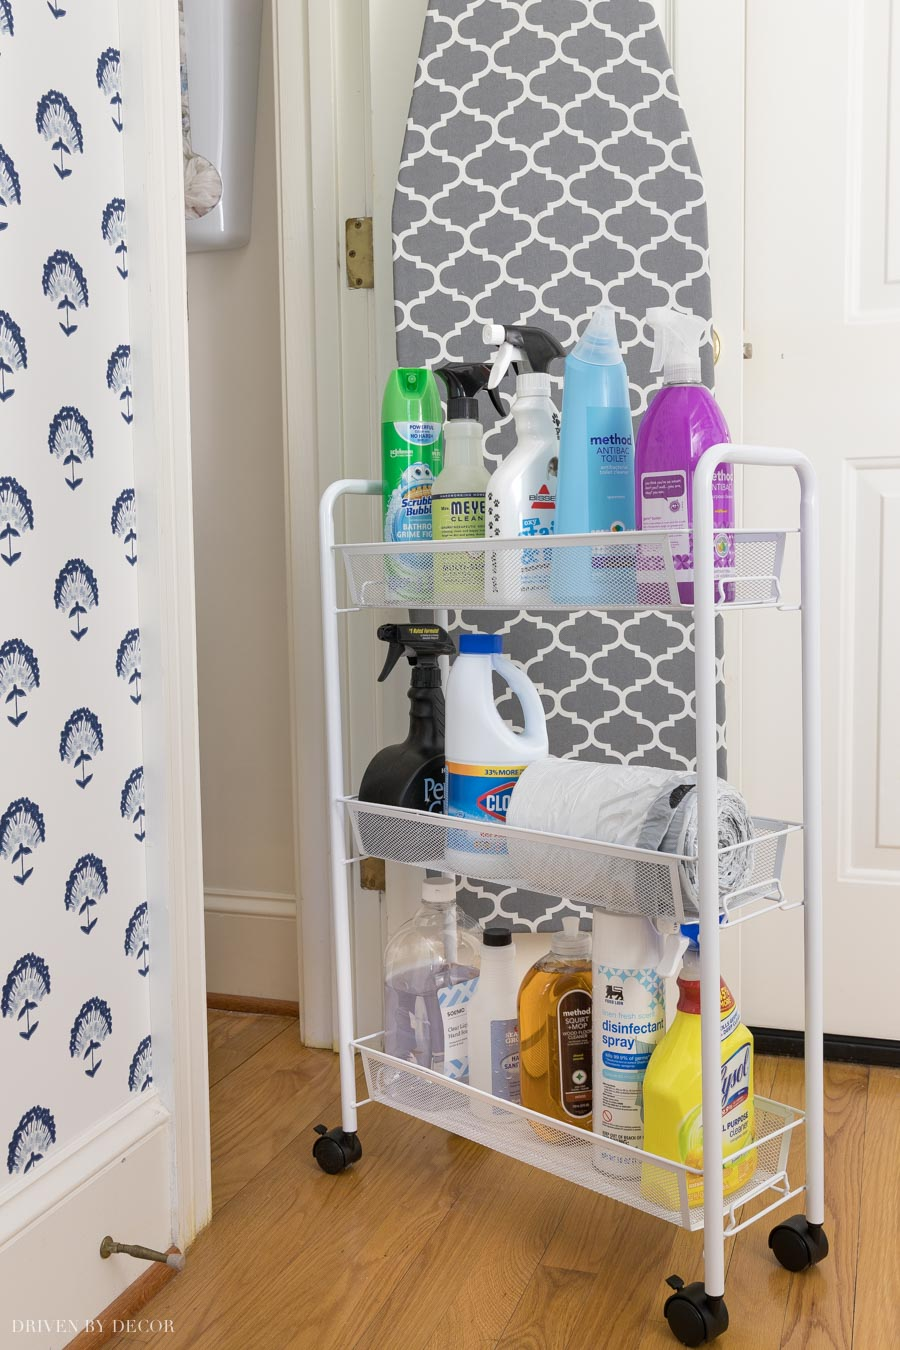 Love having a rolling cart in my utility closet to easily access cleaning supplies!